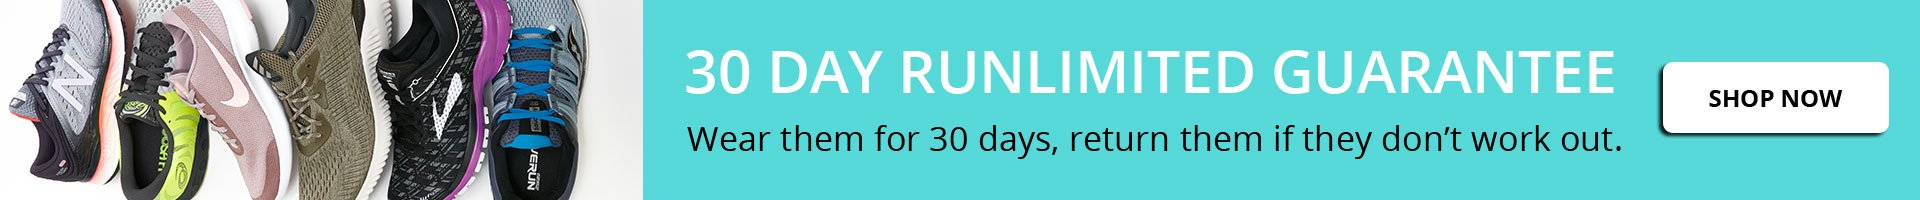 30 Day Runlimited Guarantee. Wear them for 30 days, return them if they don't work out. Shop Now.